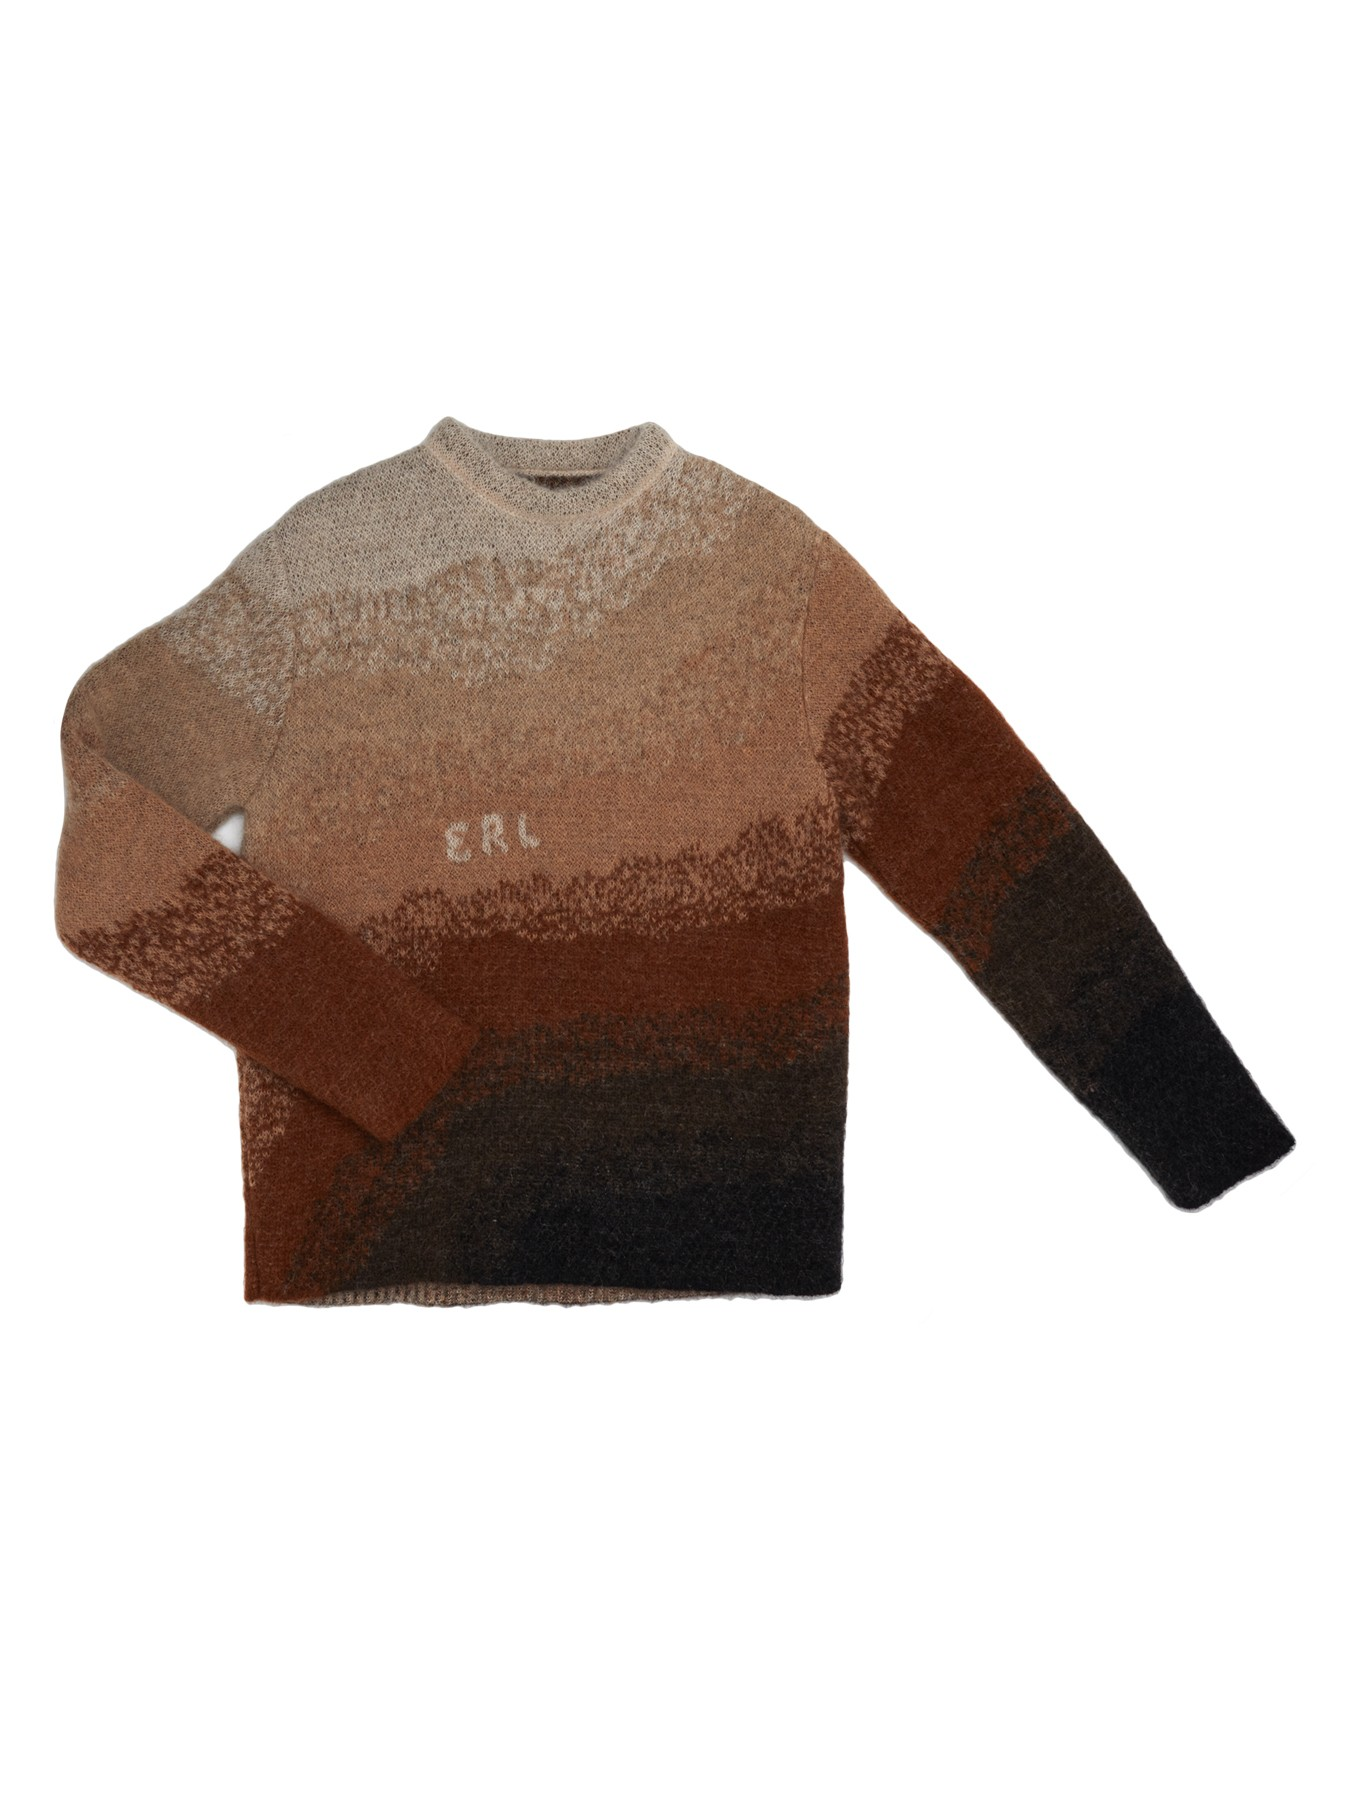 ERL Bowy Sweater Knit Brown